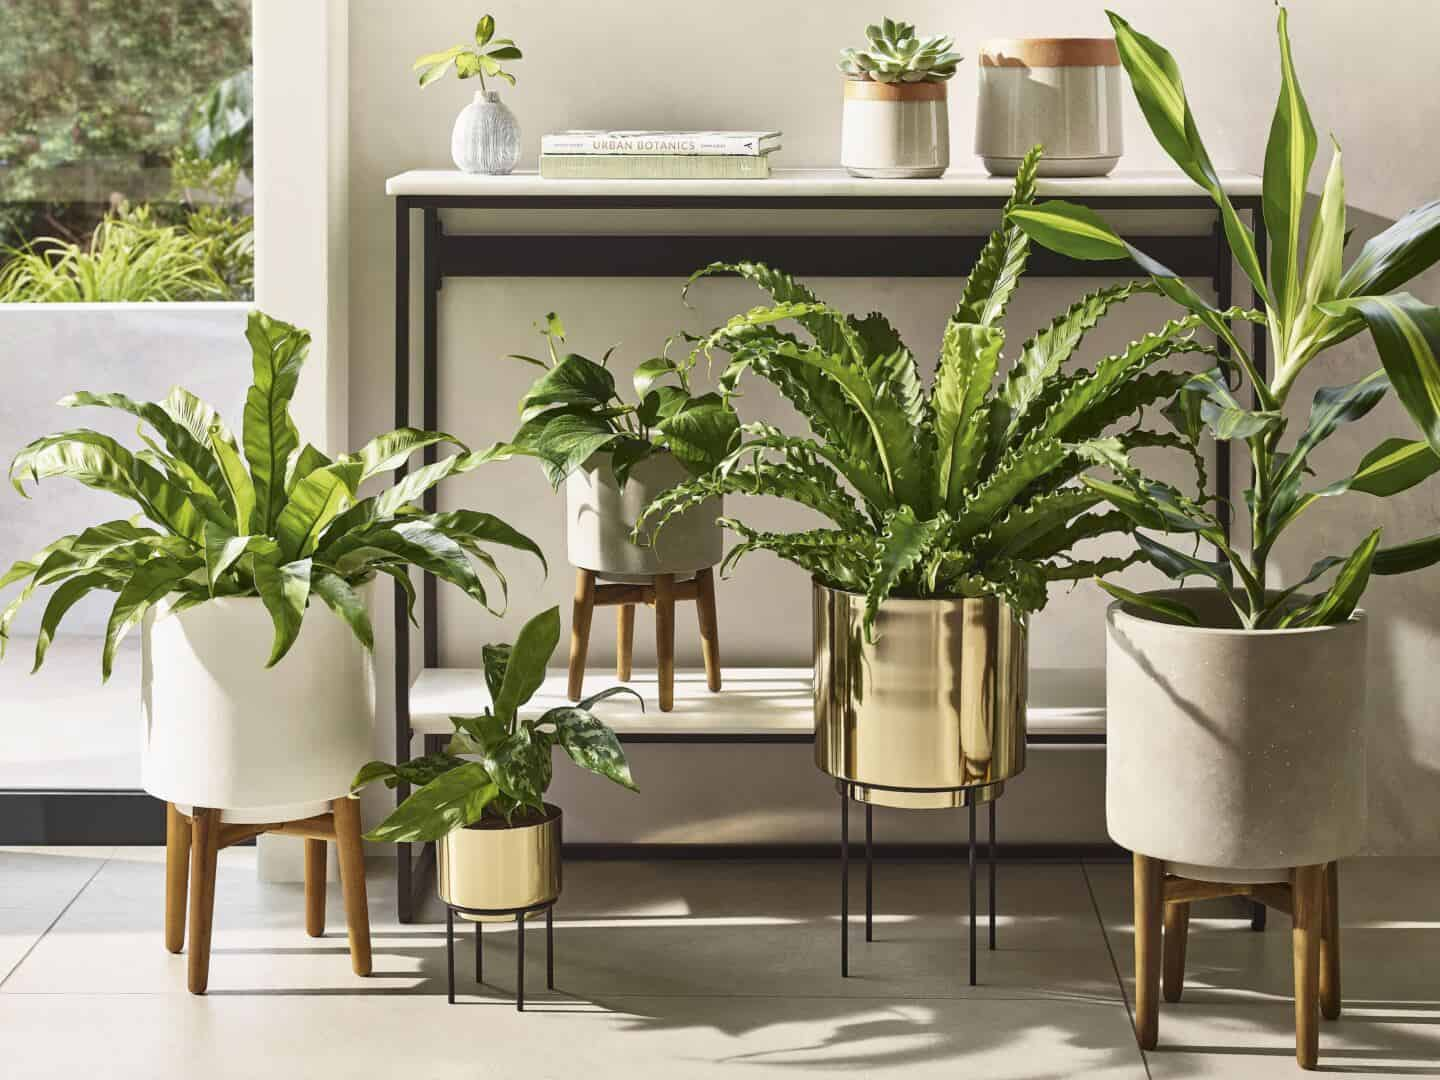 Botanicals are a SS20 interiors trend by M&S. Plants invite nature in interiorsand these plant pots on legs add height to your plant gang.